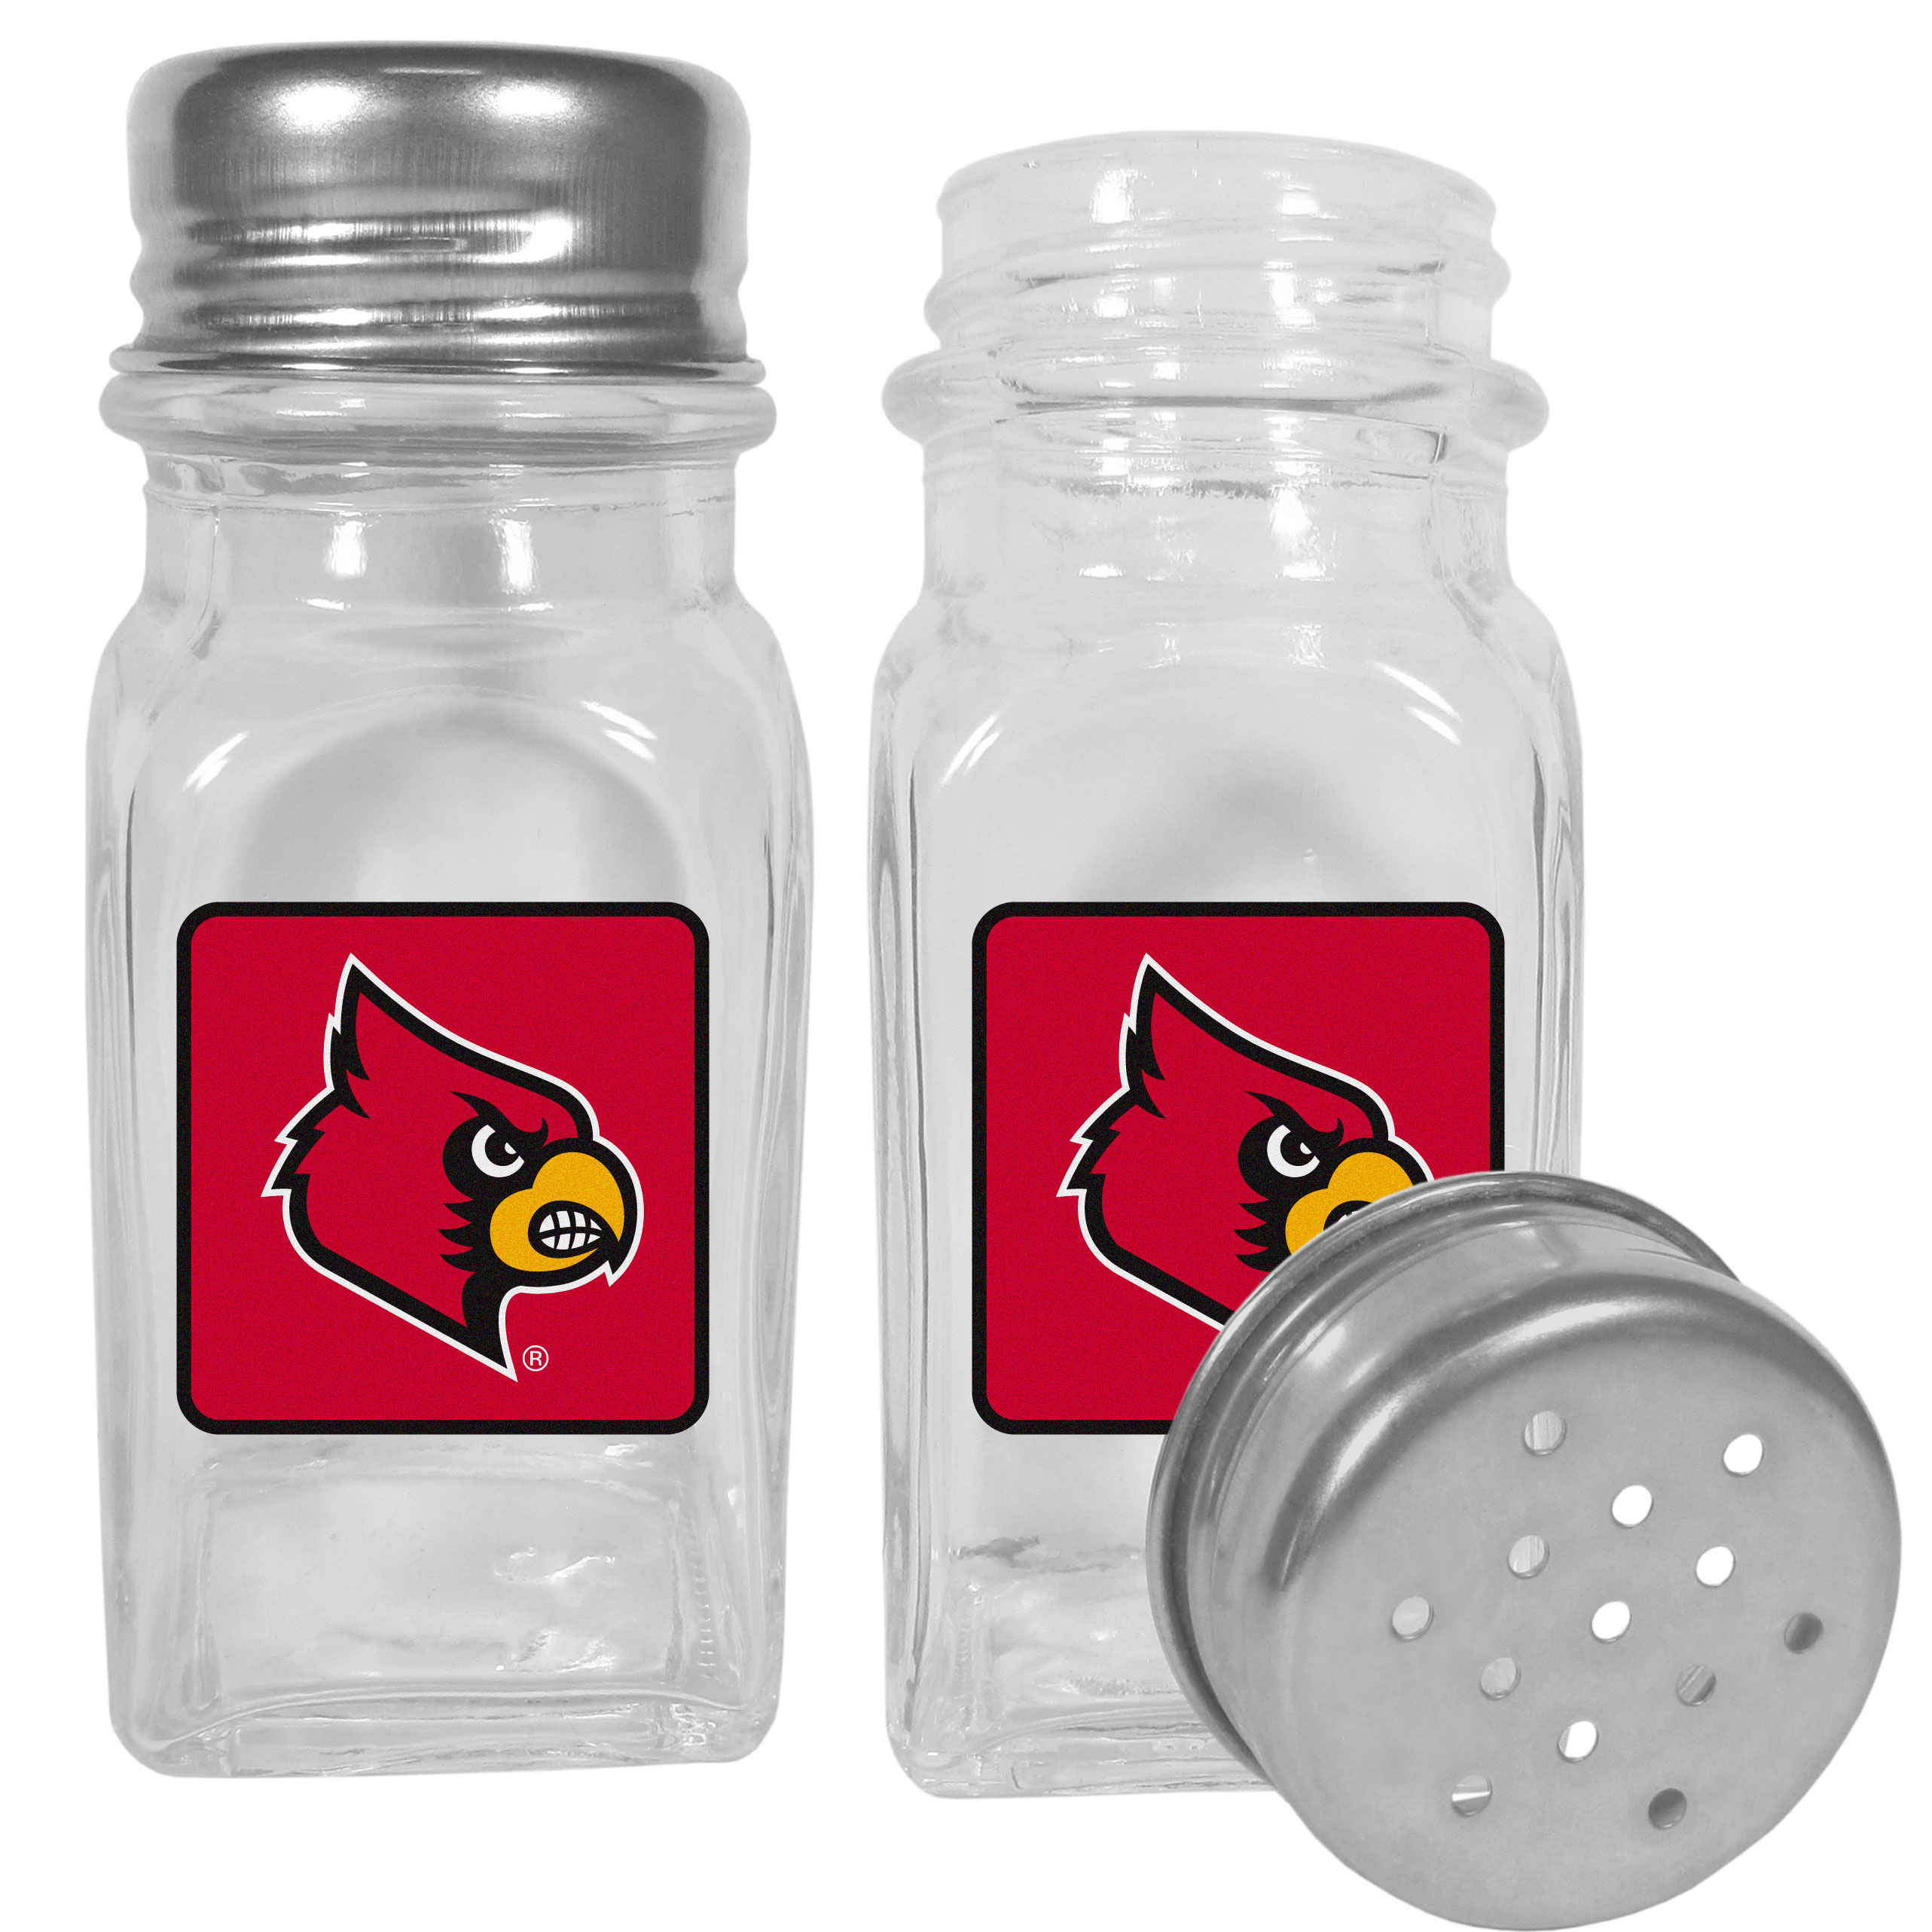 Louisville Cardinals Graphics Salt and Pepper Shaker - No tailgate party is complete without your Louisville Cardinals salt & pepper shakers featuring bright team logos. The diner replica salt and pepper shakers are glass with screw top lids. These team shakers are a great grill accessory whether you are barbecuing on the patio, picnicing or having a game day party.